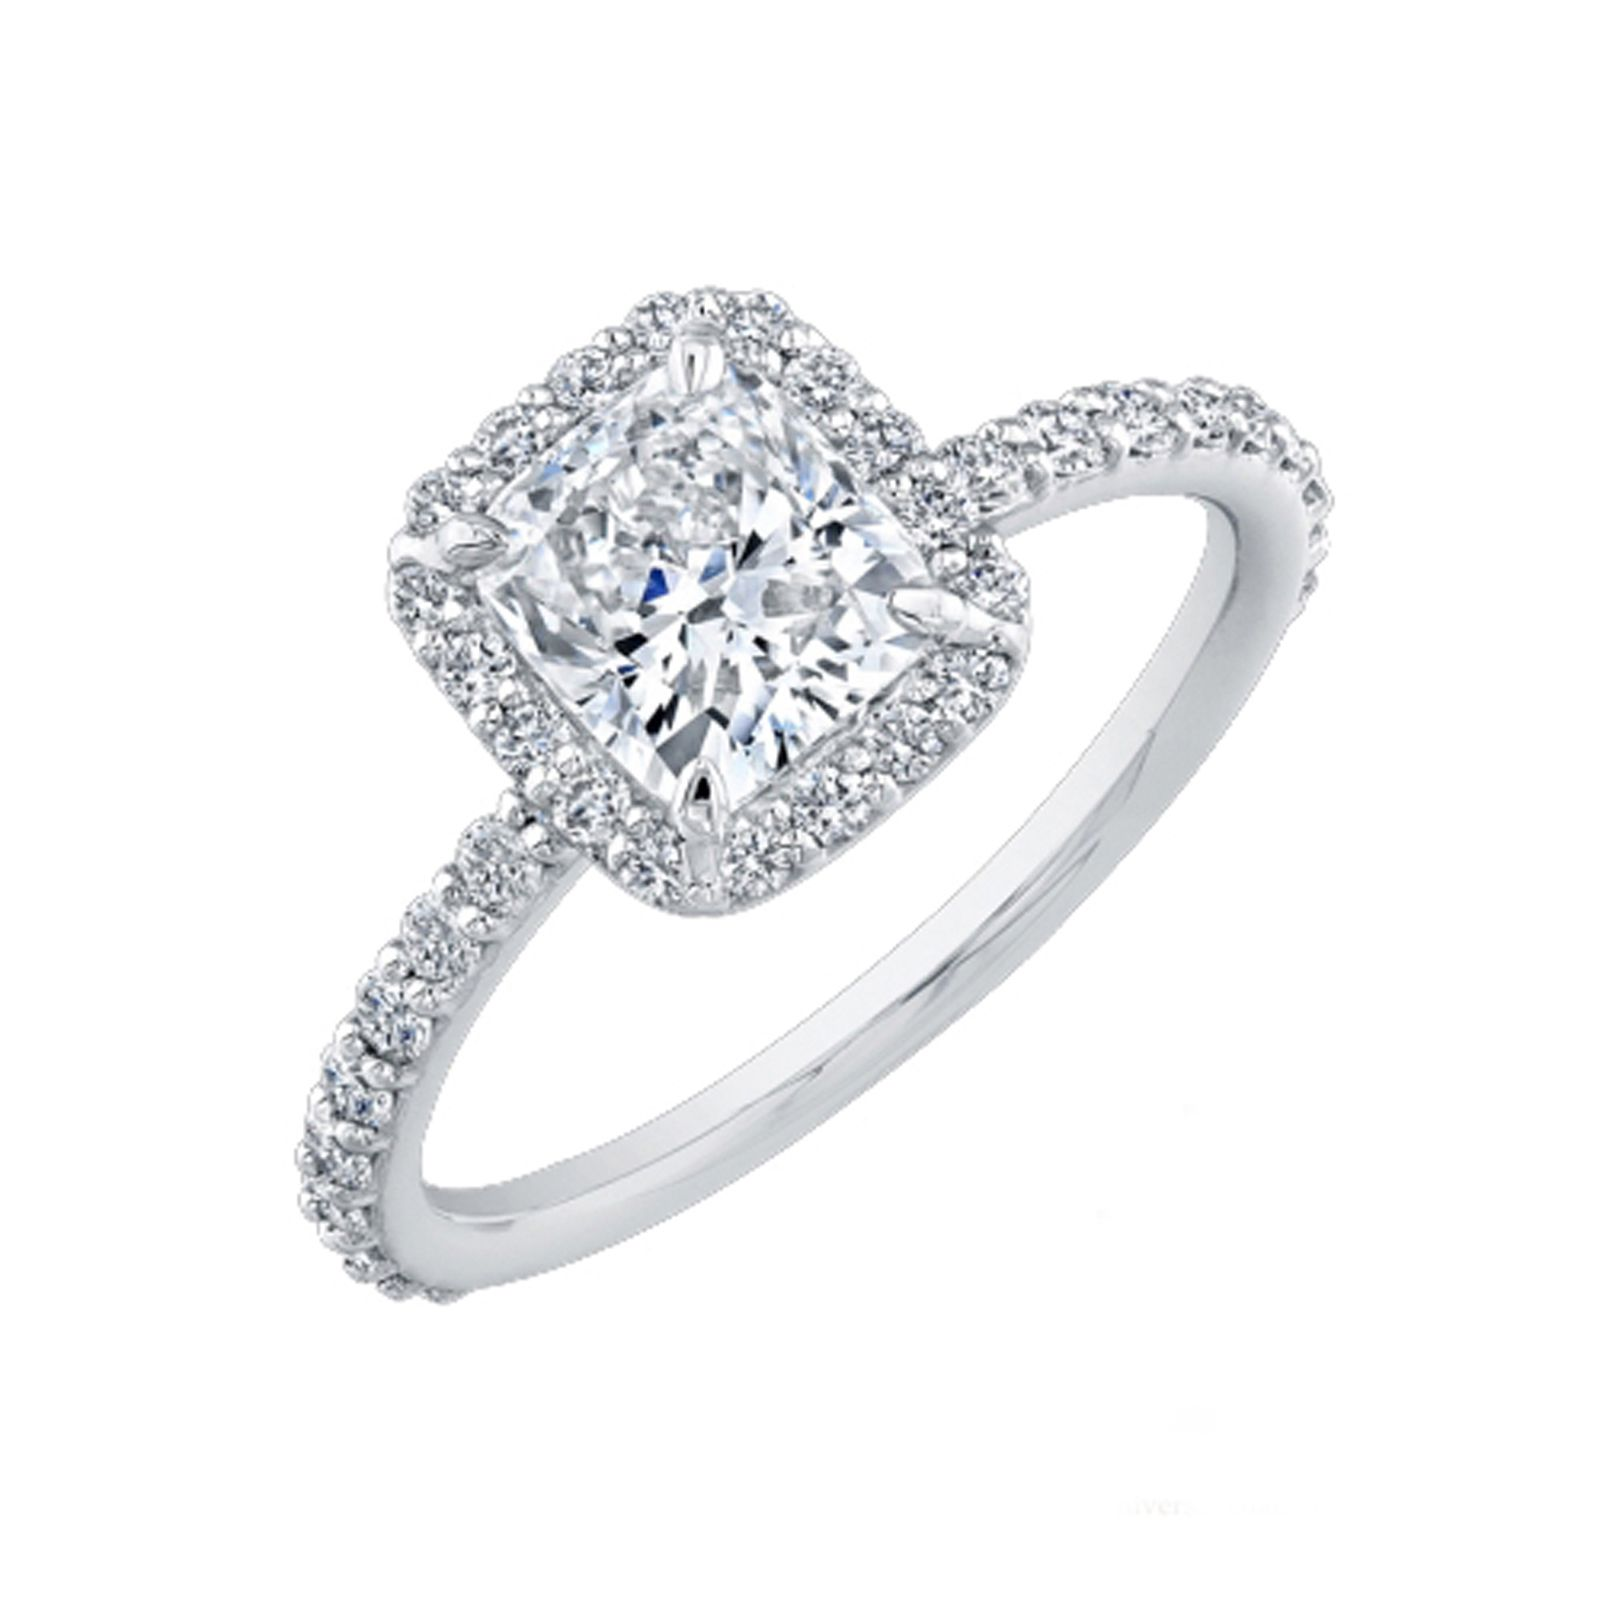 Agreeable entrancing real diamond engagement rings under